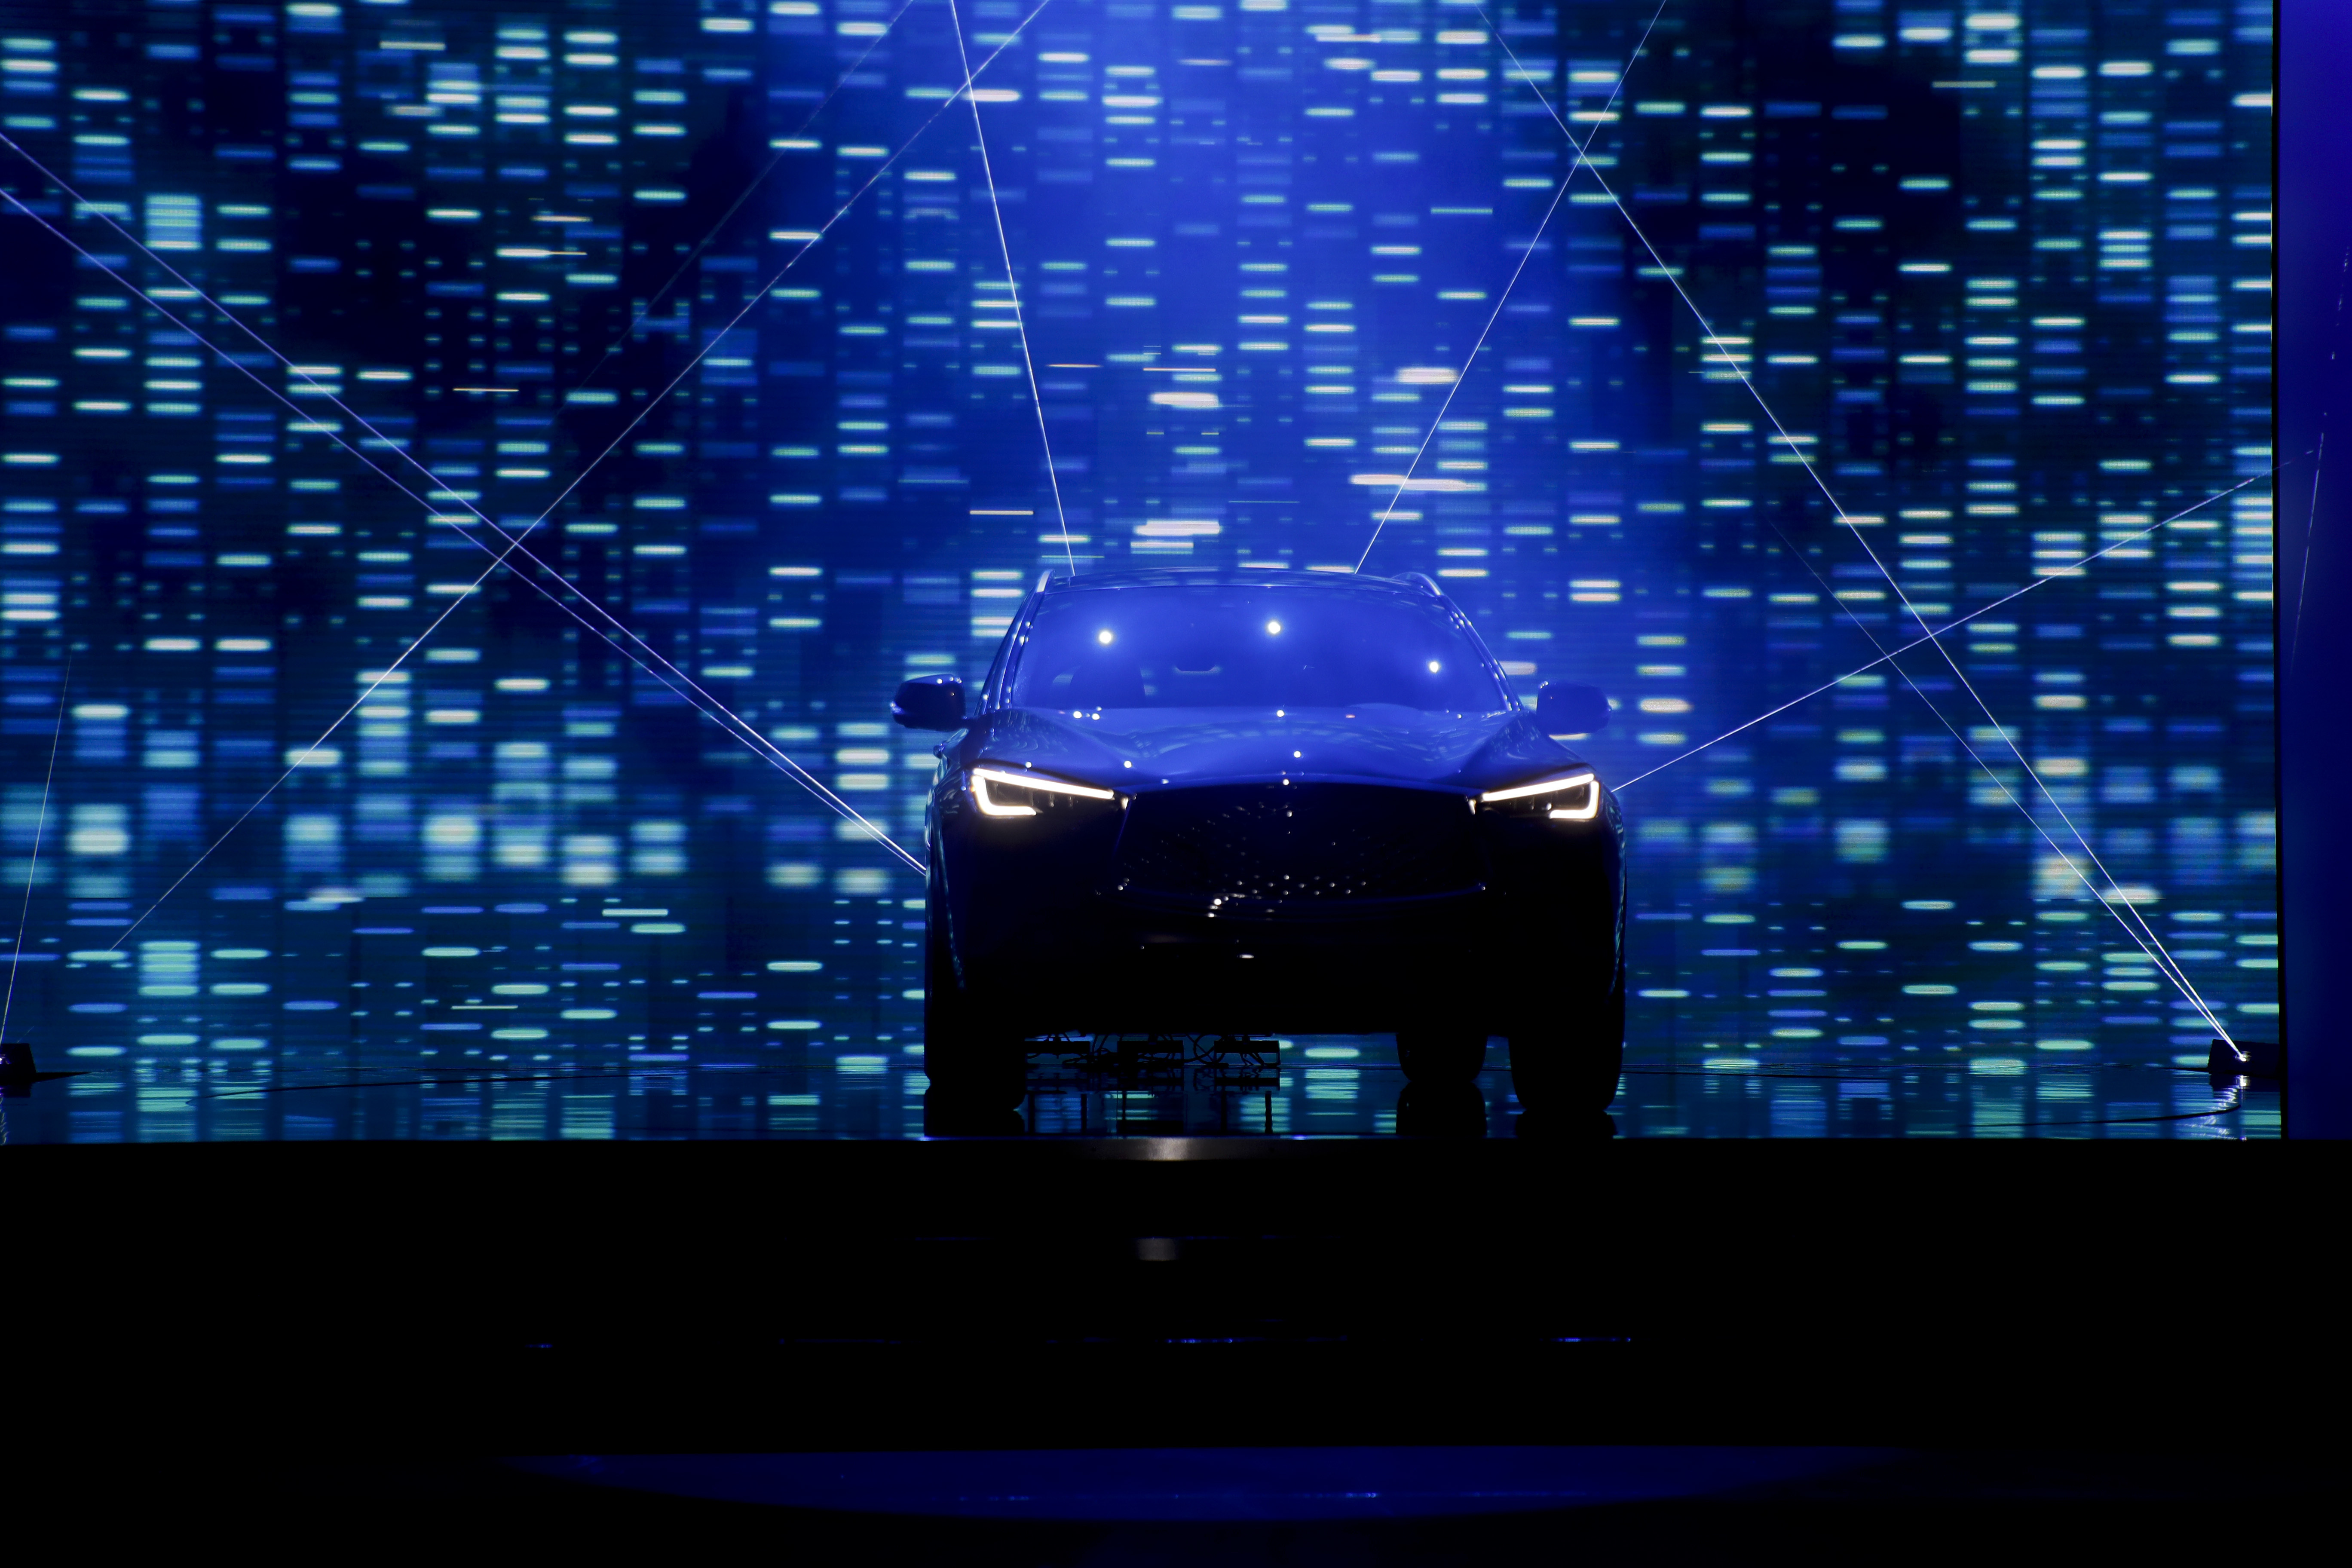 The 2018 Infiniti QX50 is revealed as part of the AutoMobility LA auto show Tuesday, Nov. 28, 2017, in Hawthorne, Calif. (AP Photo/Chris Carlson)